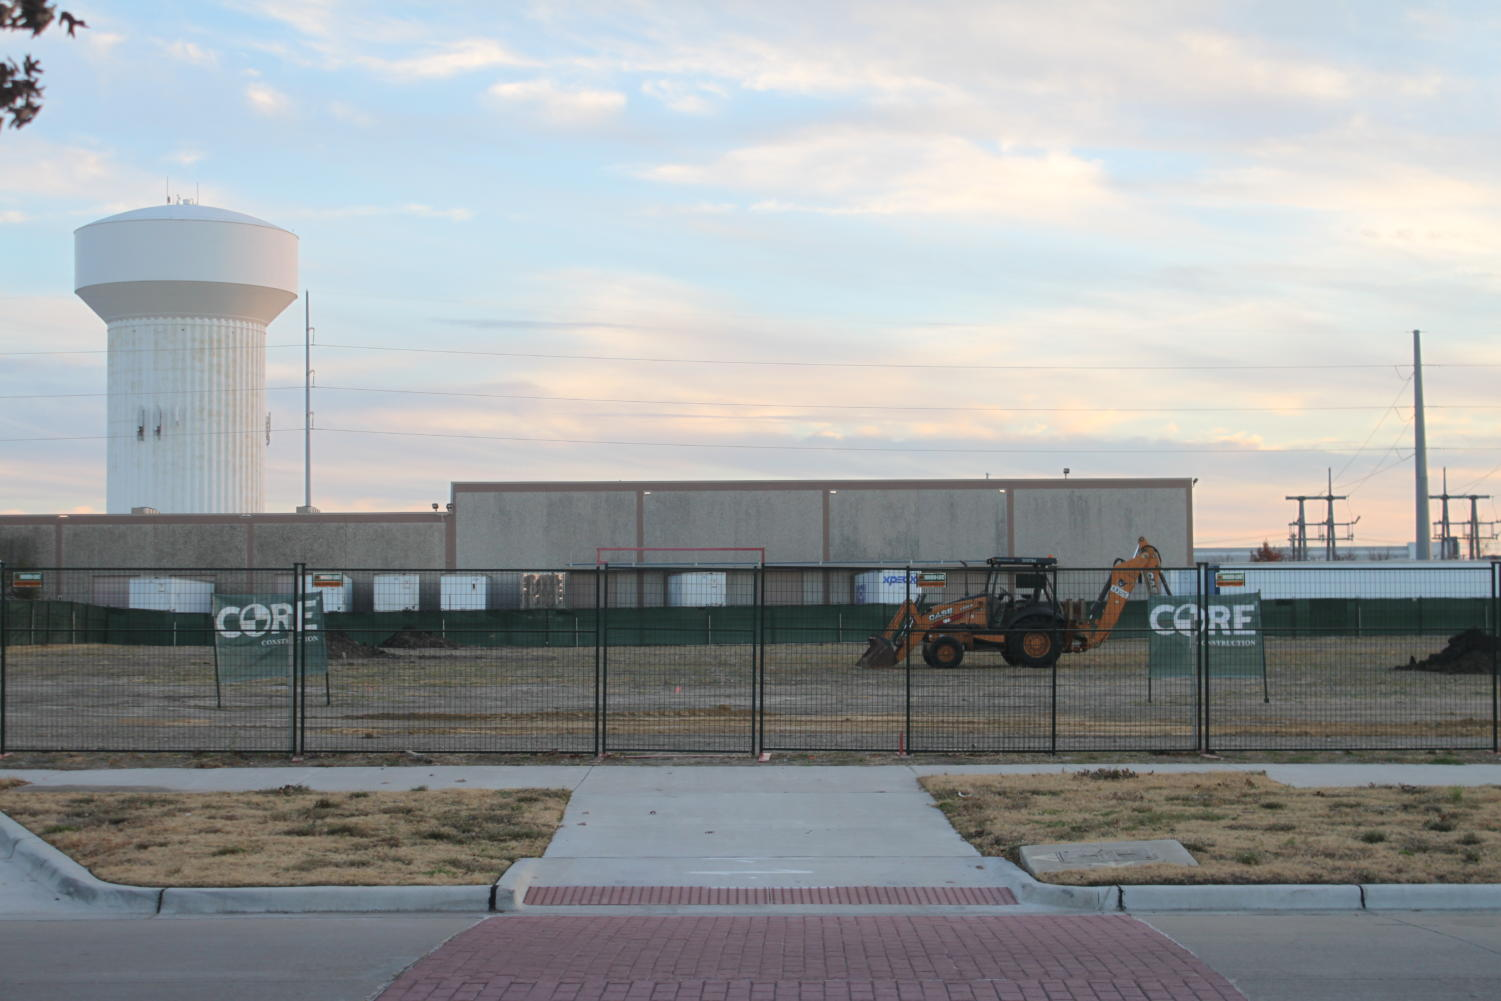 The Coppell Arts Center is currently under construction in Old Town Coppell on the intersection of Travis and West Main Street. The center is scheduled to open in November 2019 and will contain a main stage theater, a flexible theater, a multi-purpose area and additional work space.